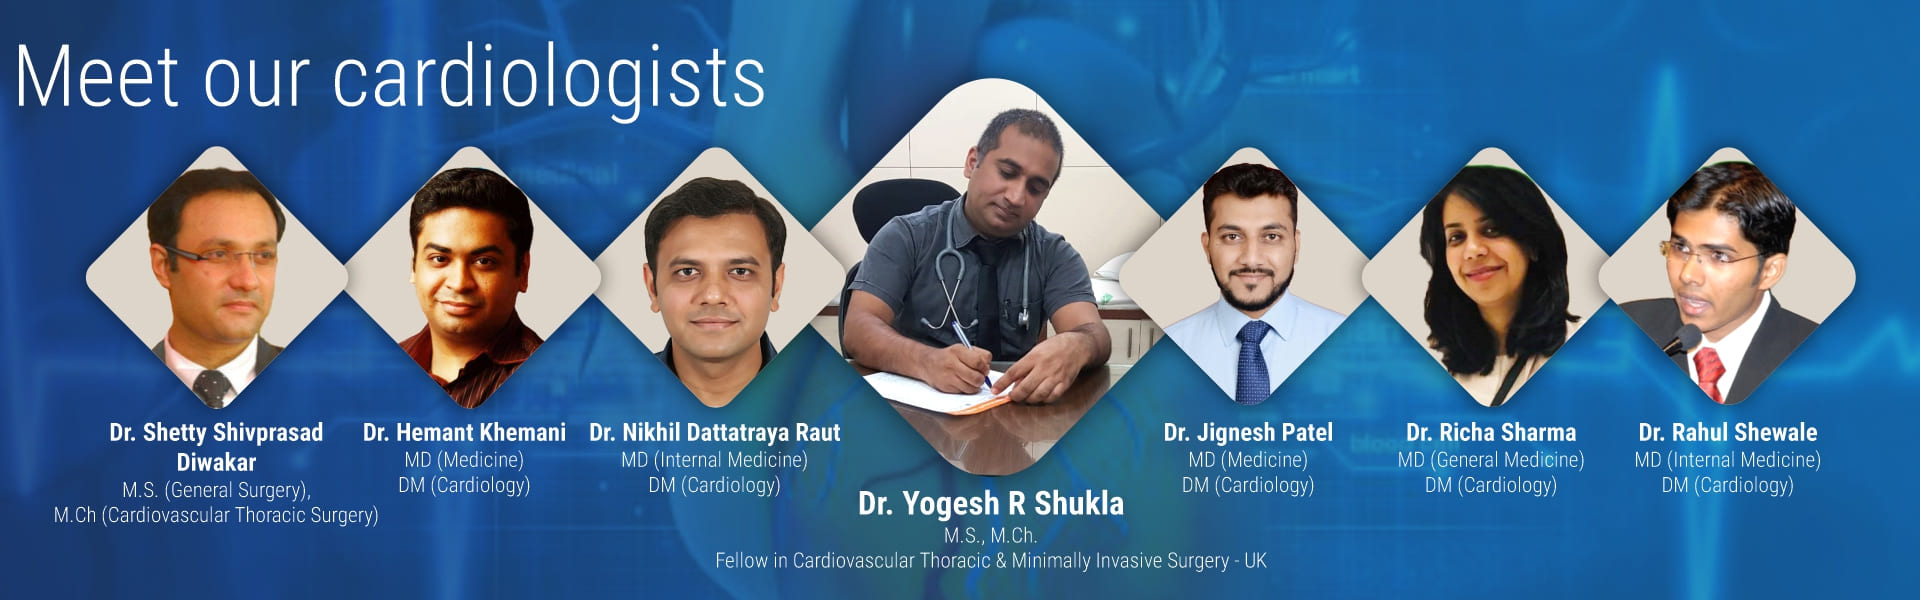 Meet our cardiologists | mHospitals